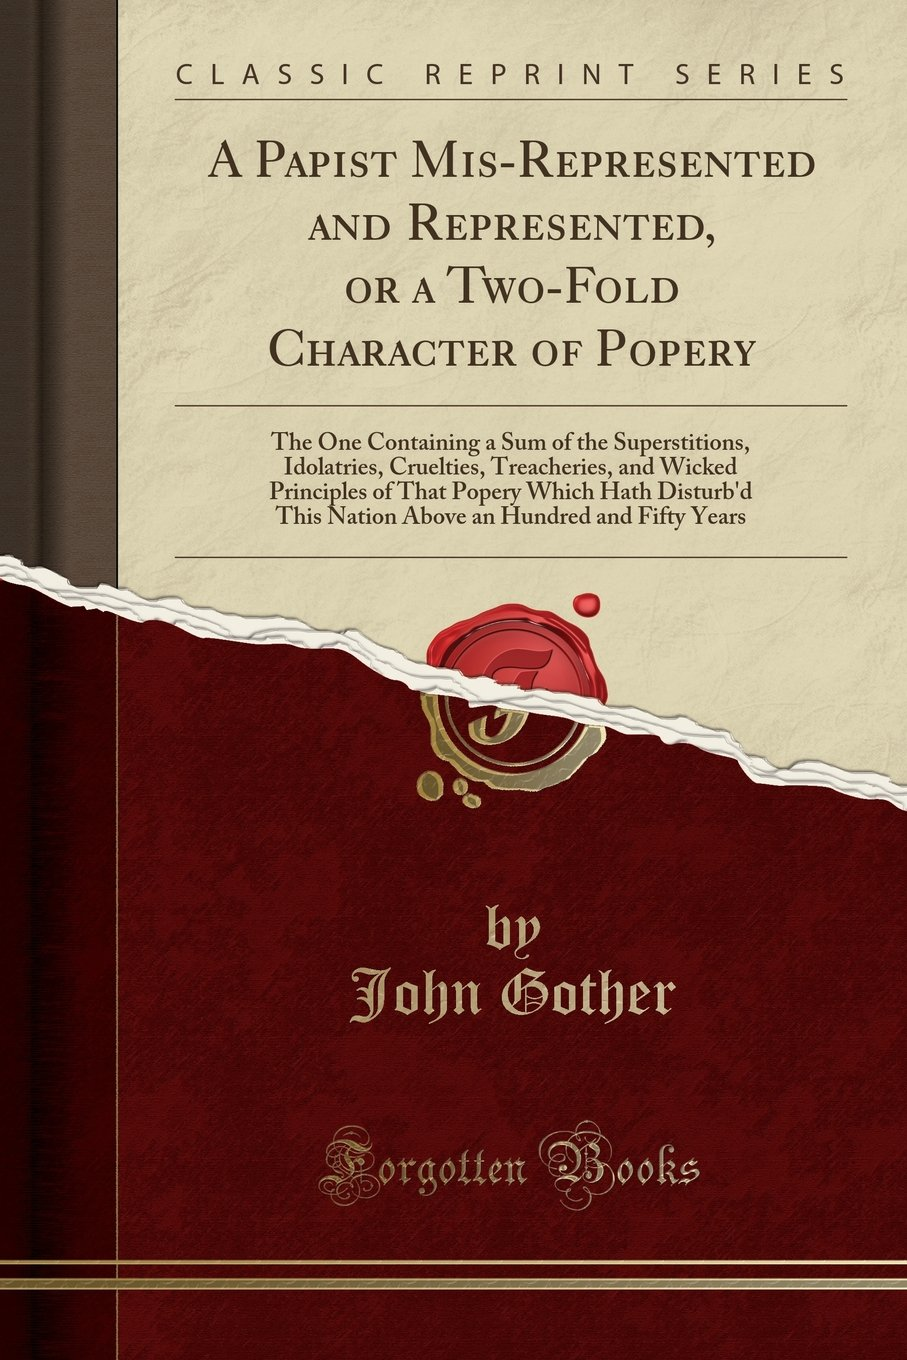 Download A Papist Mis-Represented and Represented, or a Two-Fold Character of Popery: The One Containing a Sum of the Superstitions, Idolatries, Cruelties, ... This Nation Above an Hundred and Fift PDF